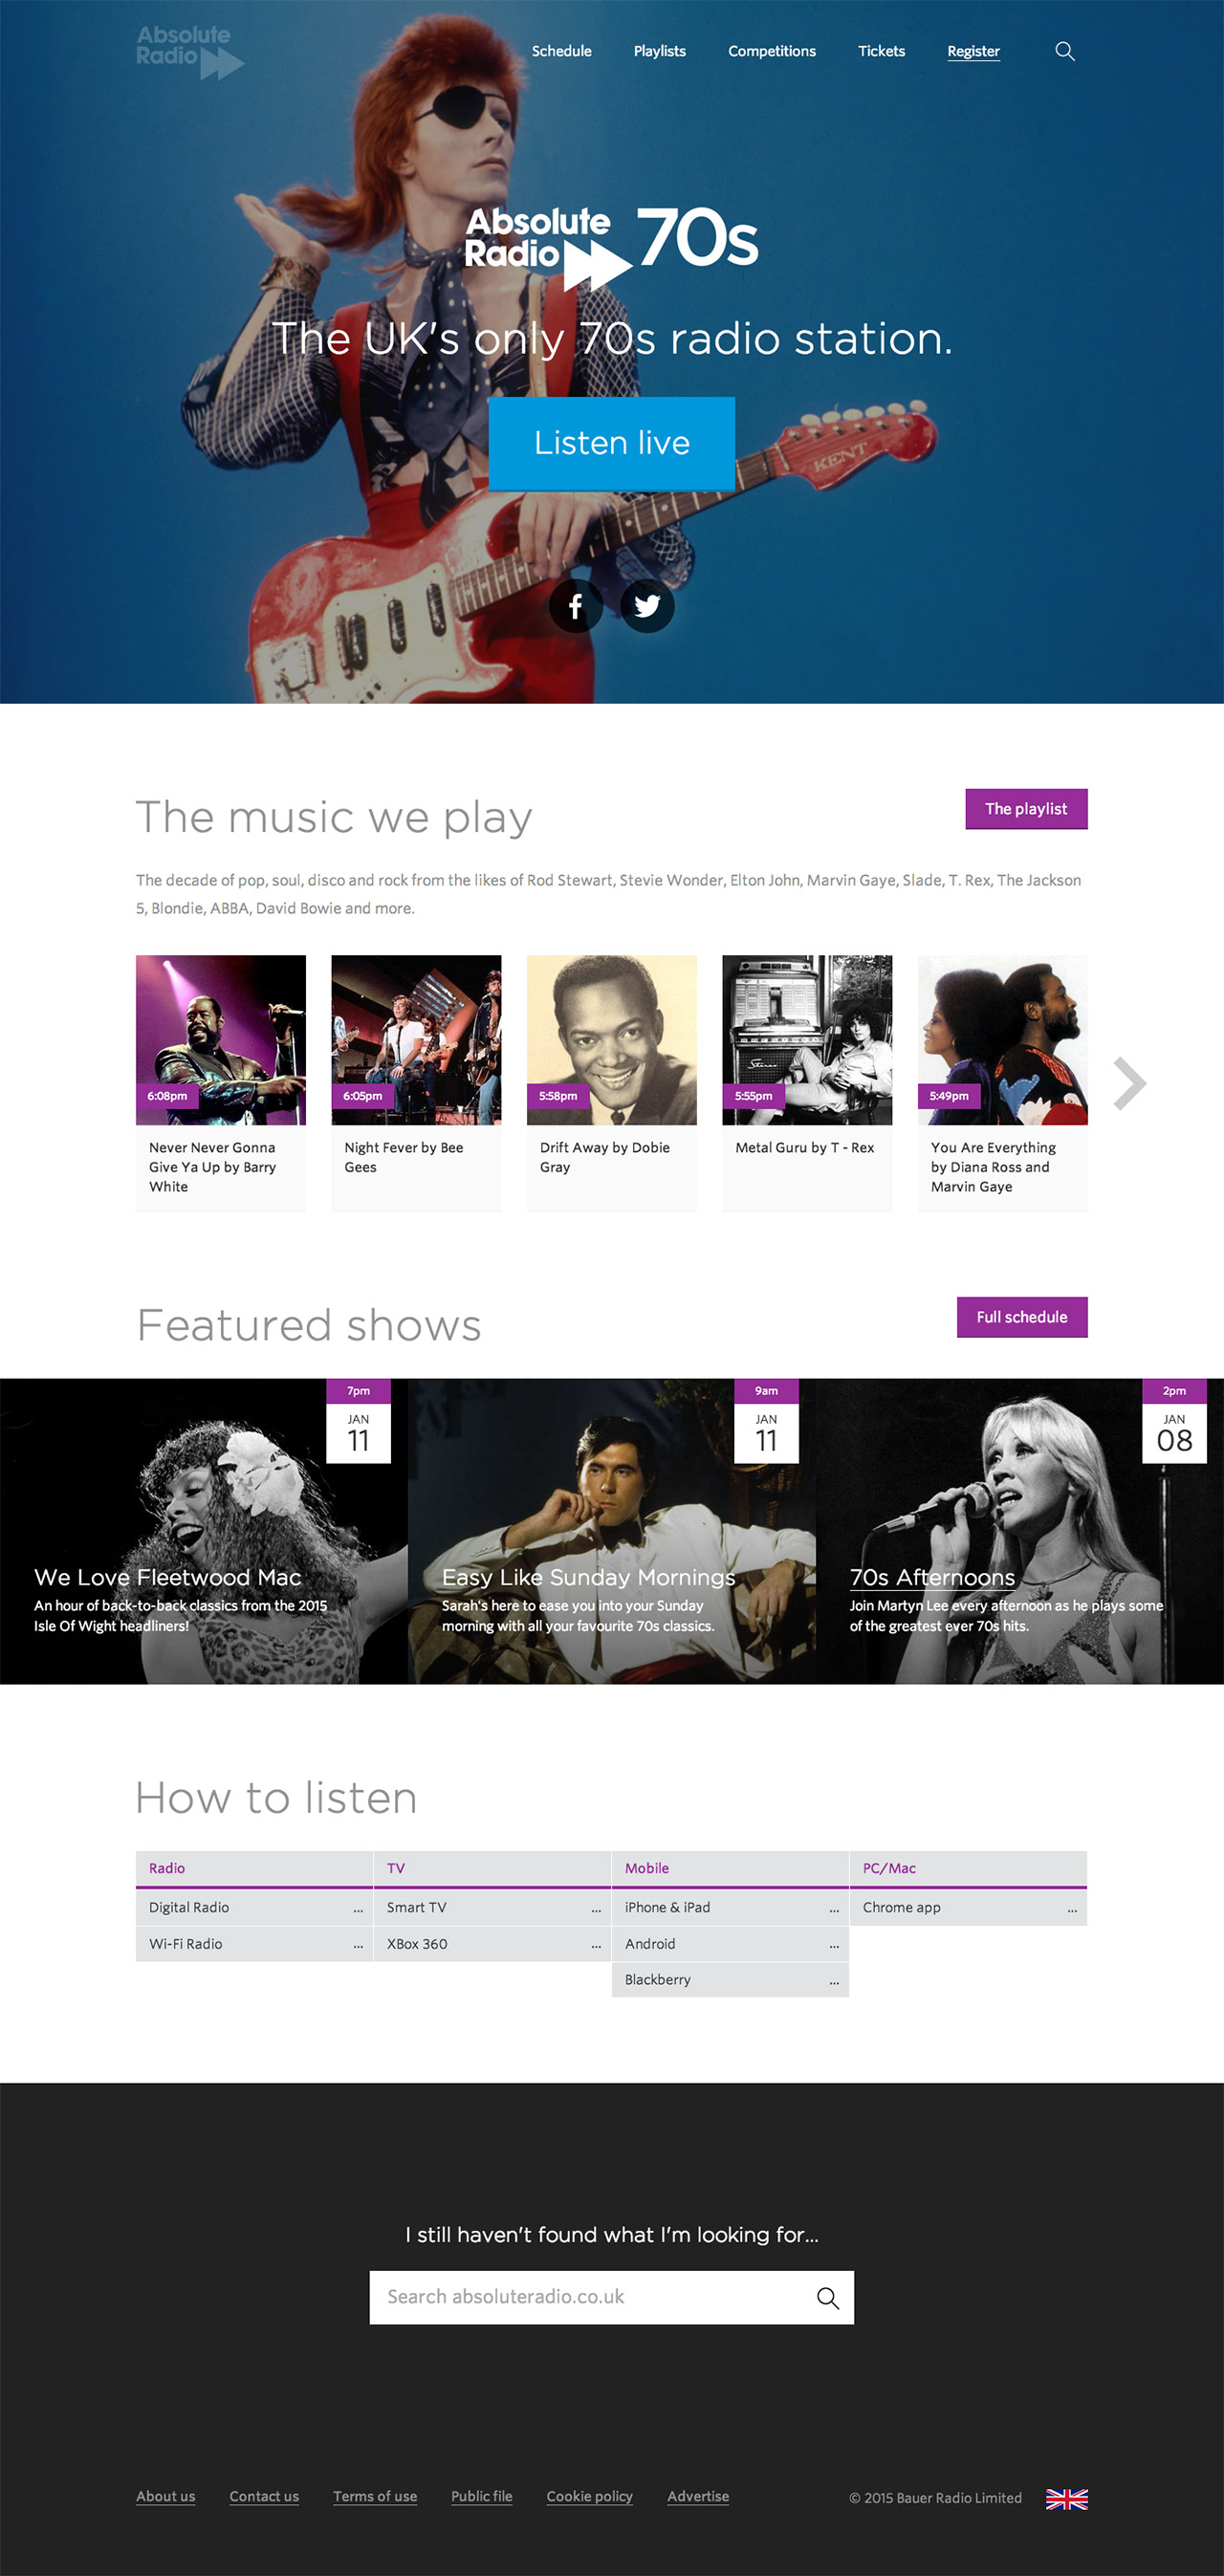 Absolute Radio 70s homepage screenshot